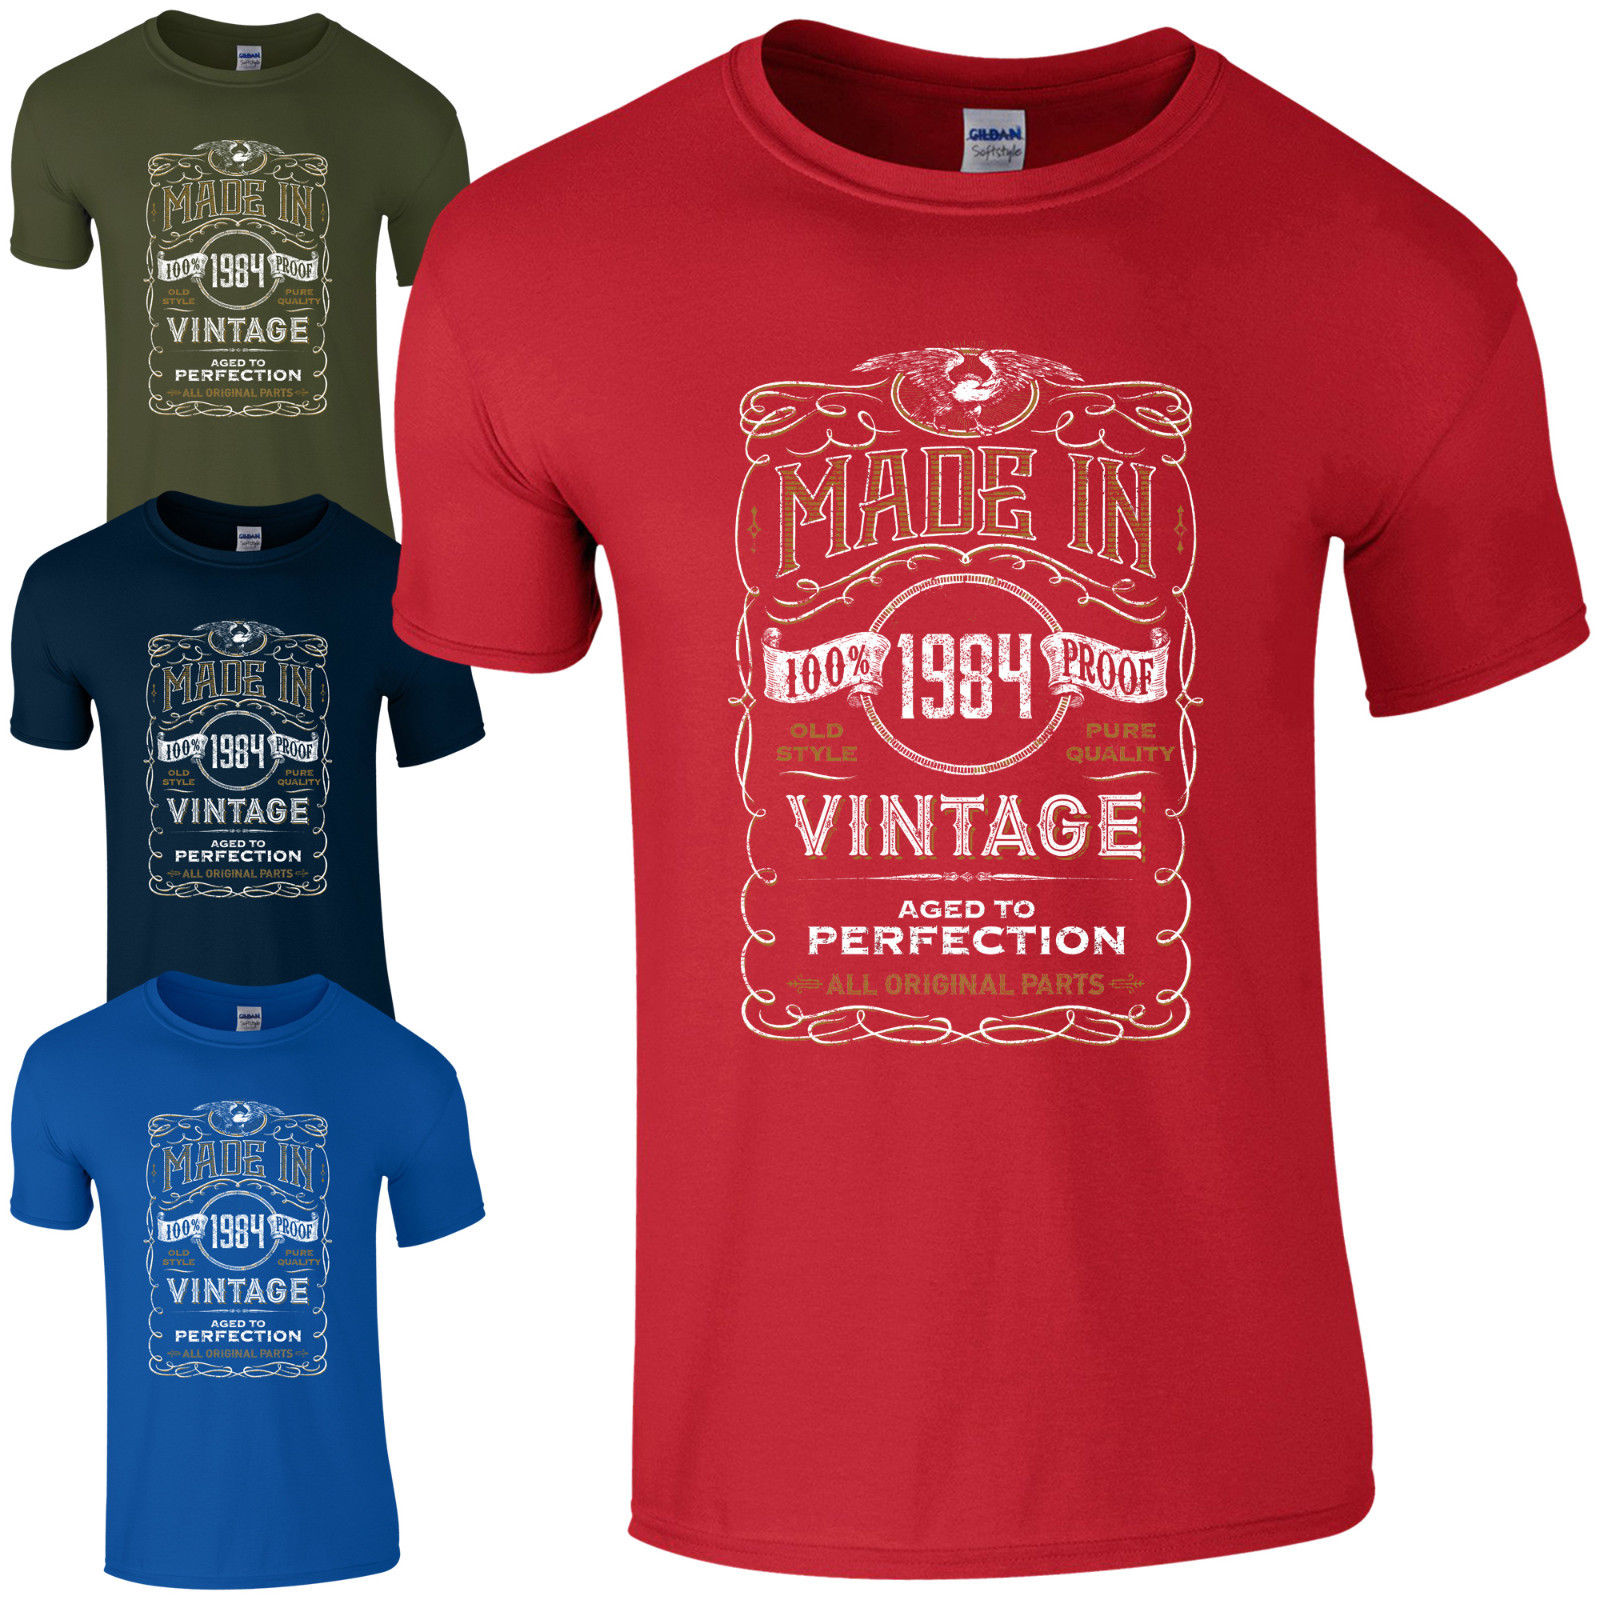 Made in 1984 T-Shirt Born 34th Year Birthday Age Present Vintage Funny Mens Gift Print T Shirt Short  free shipping